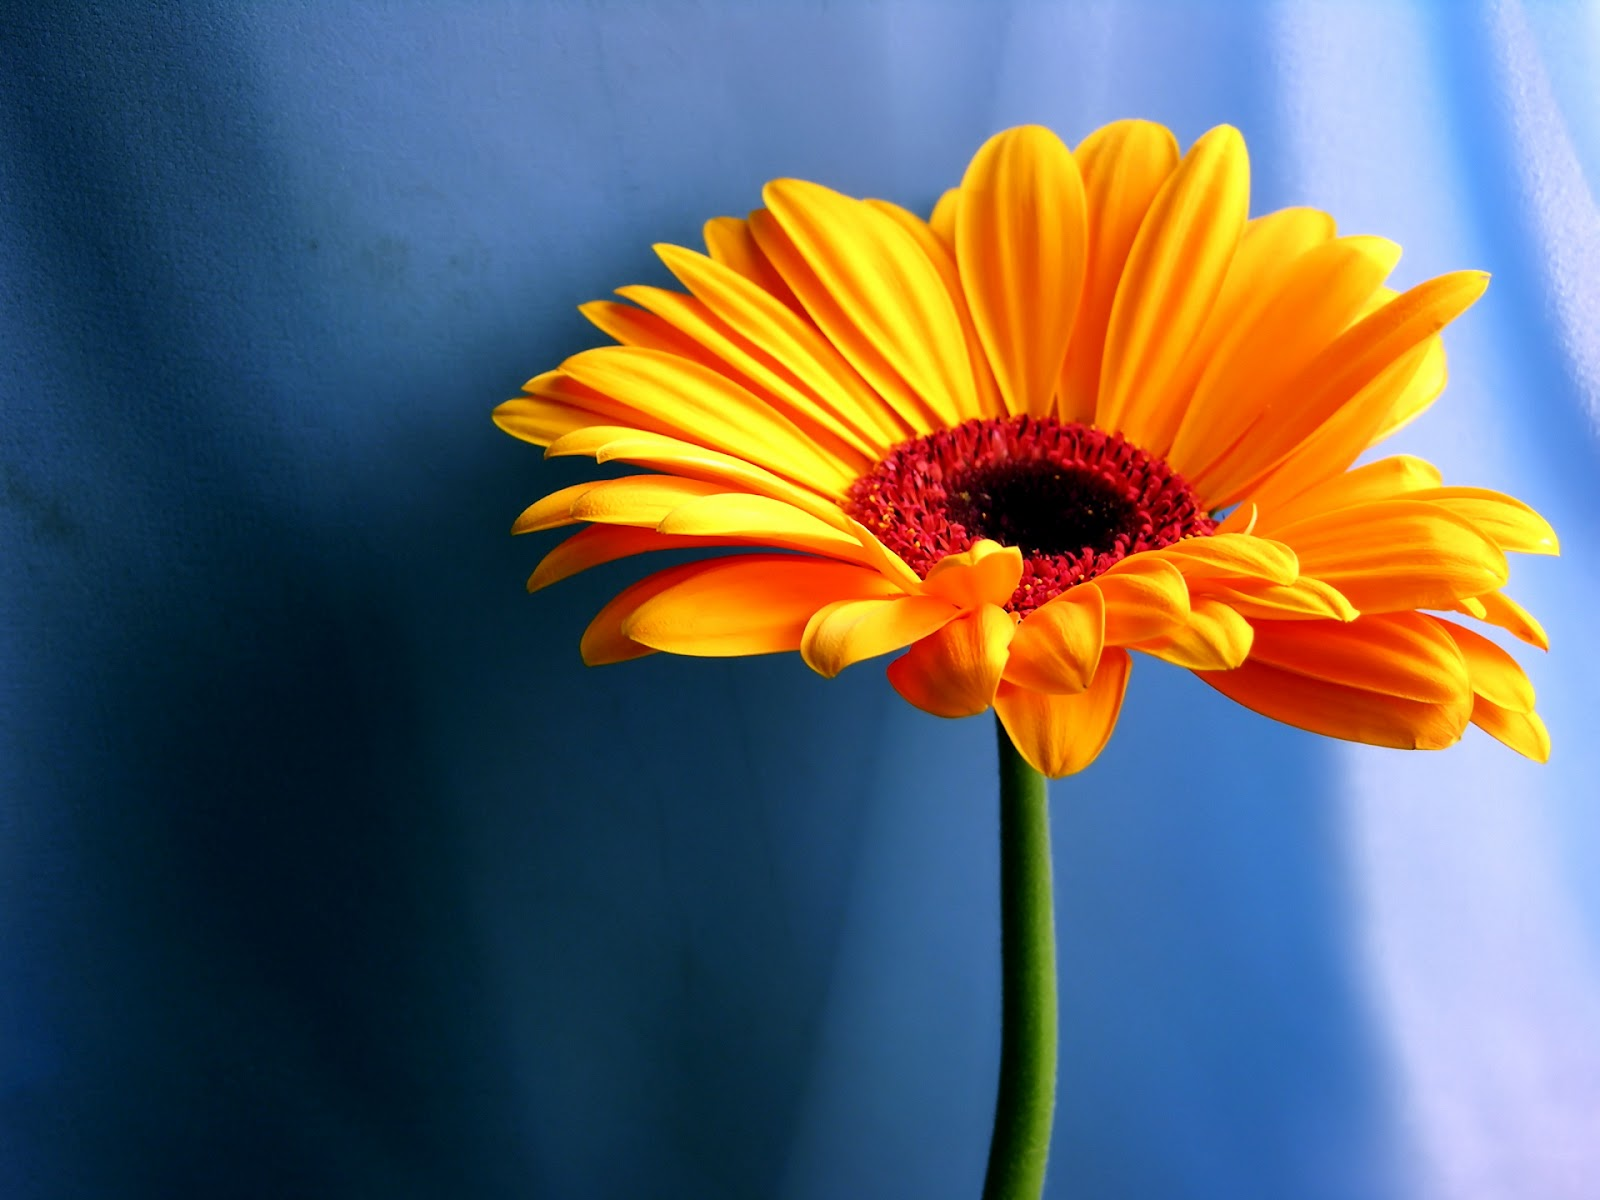 flowers for flower lovers.: Daisy flowers desktop wallpapers.